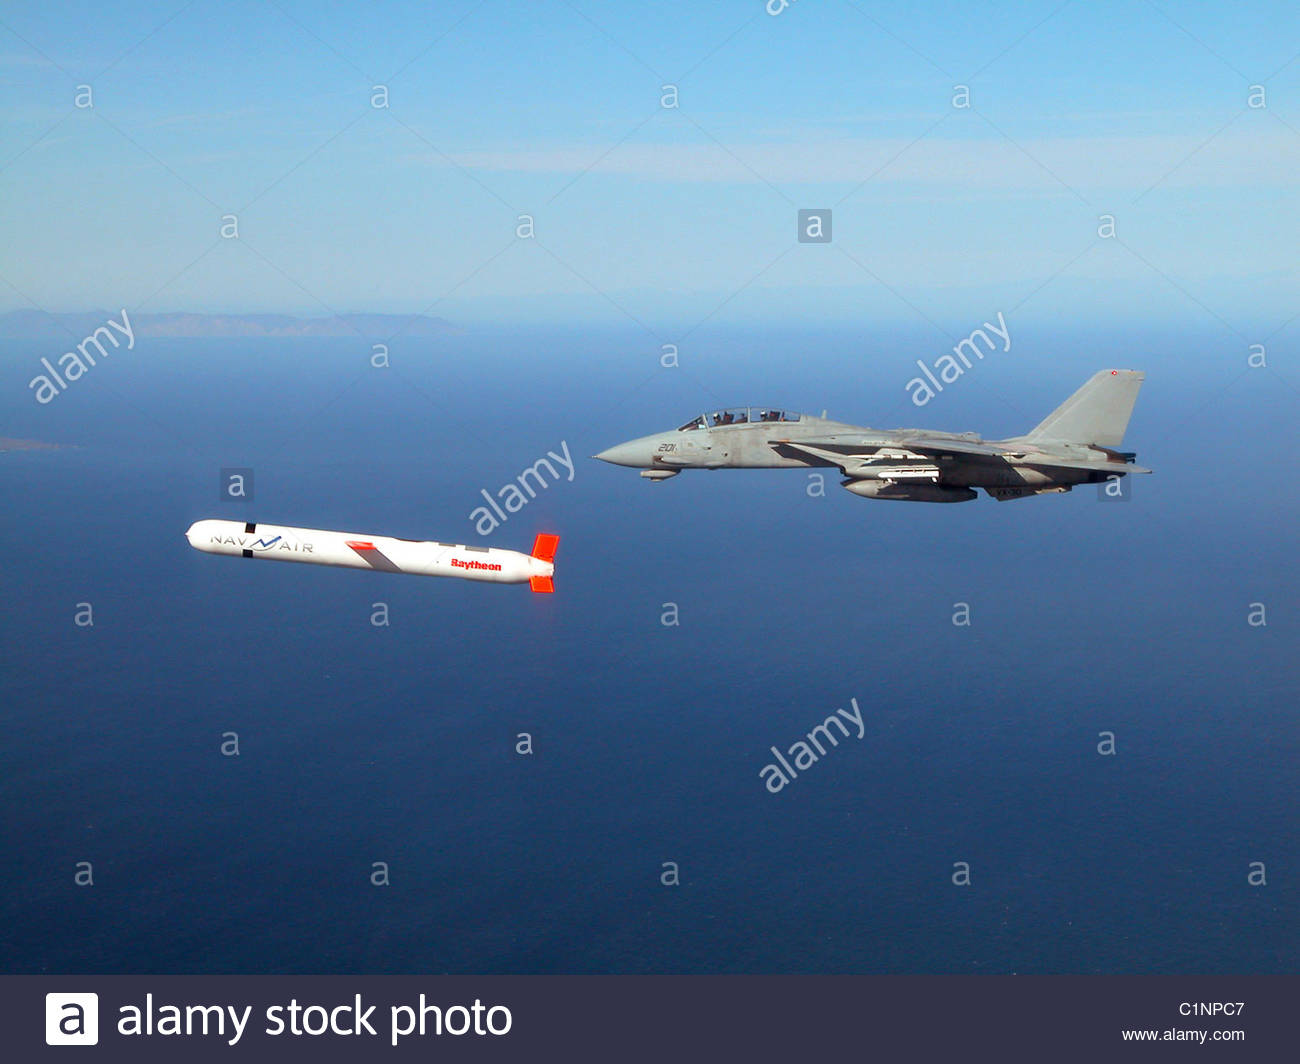 Tactical 'Tomahawk' Block IV cruise missile is escorted by a Navy F-14 'Tomcat' fighter - Stock Image